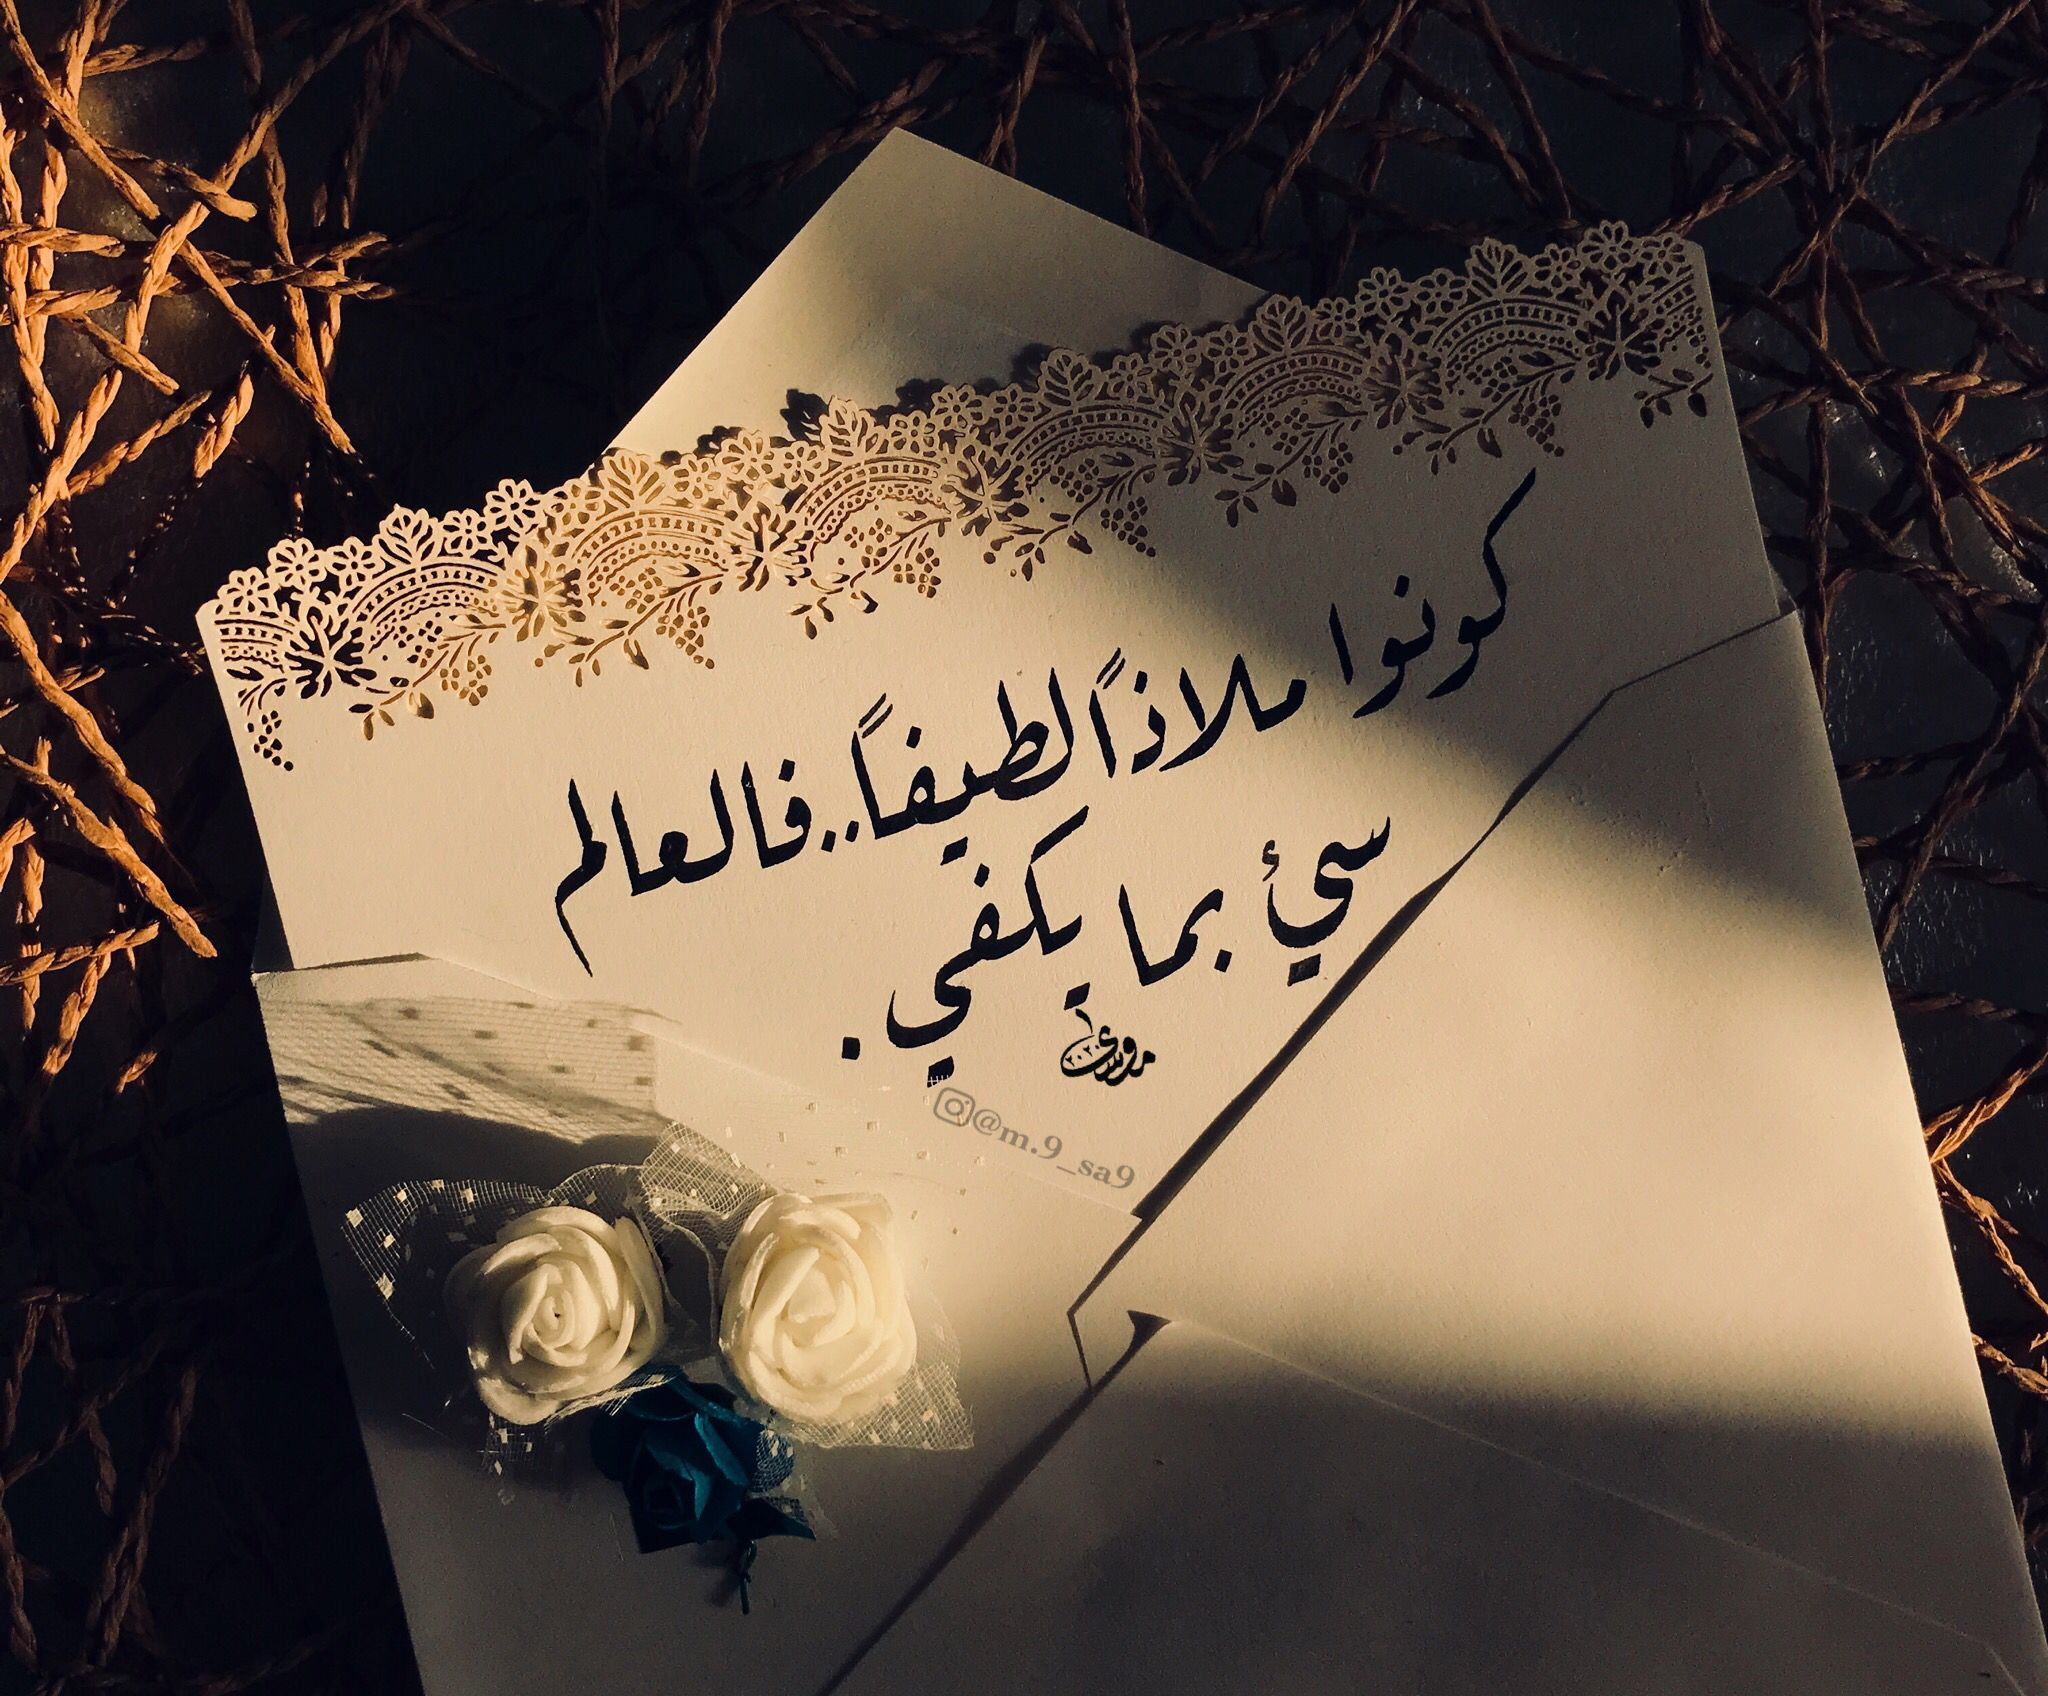 Mosa D M 9 Sa9 Instagram Photos And Videos Mixed Feelings Quotes Arabian Art Beautiful Words